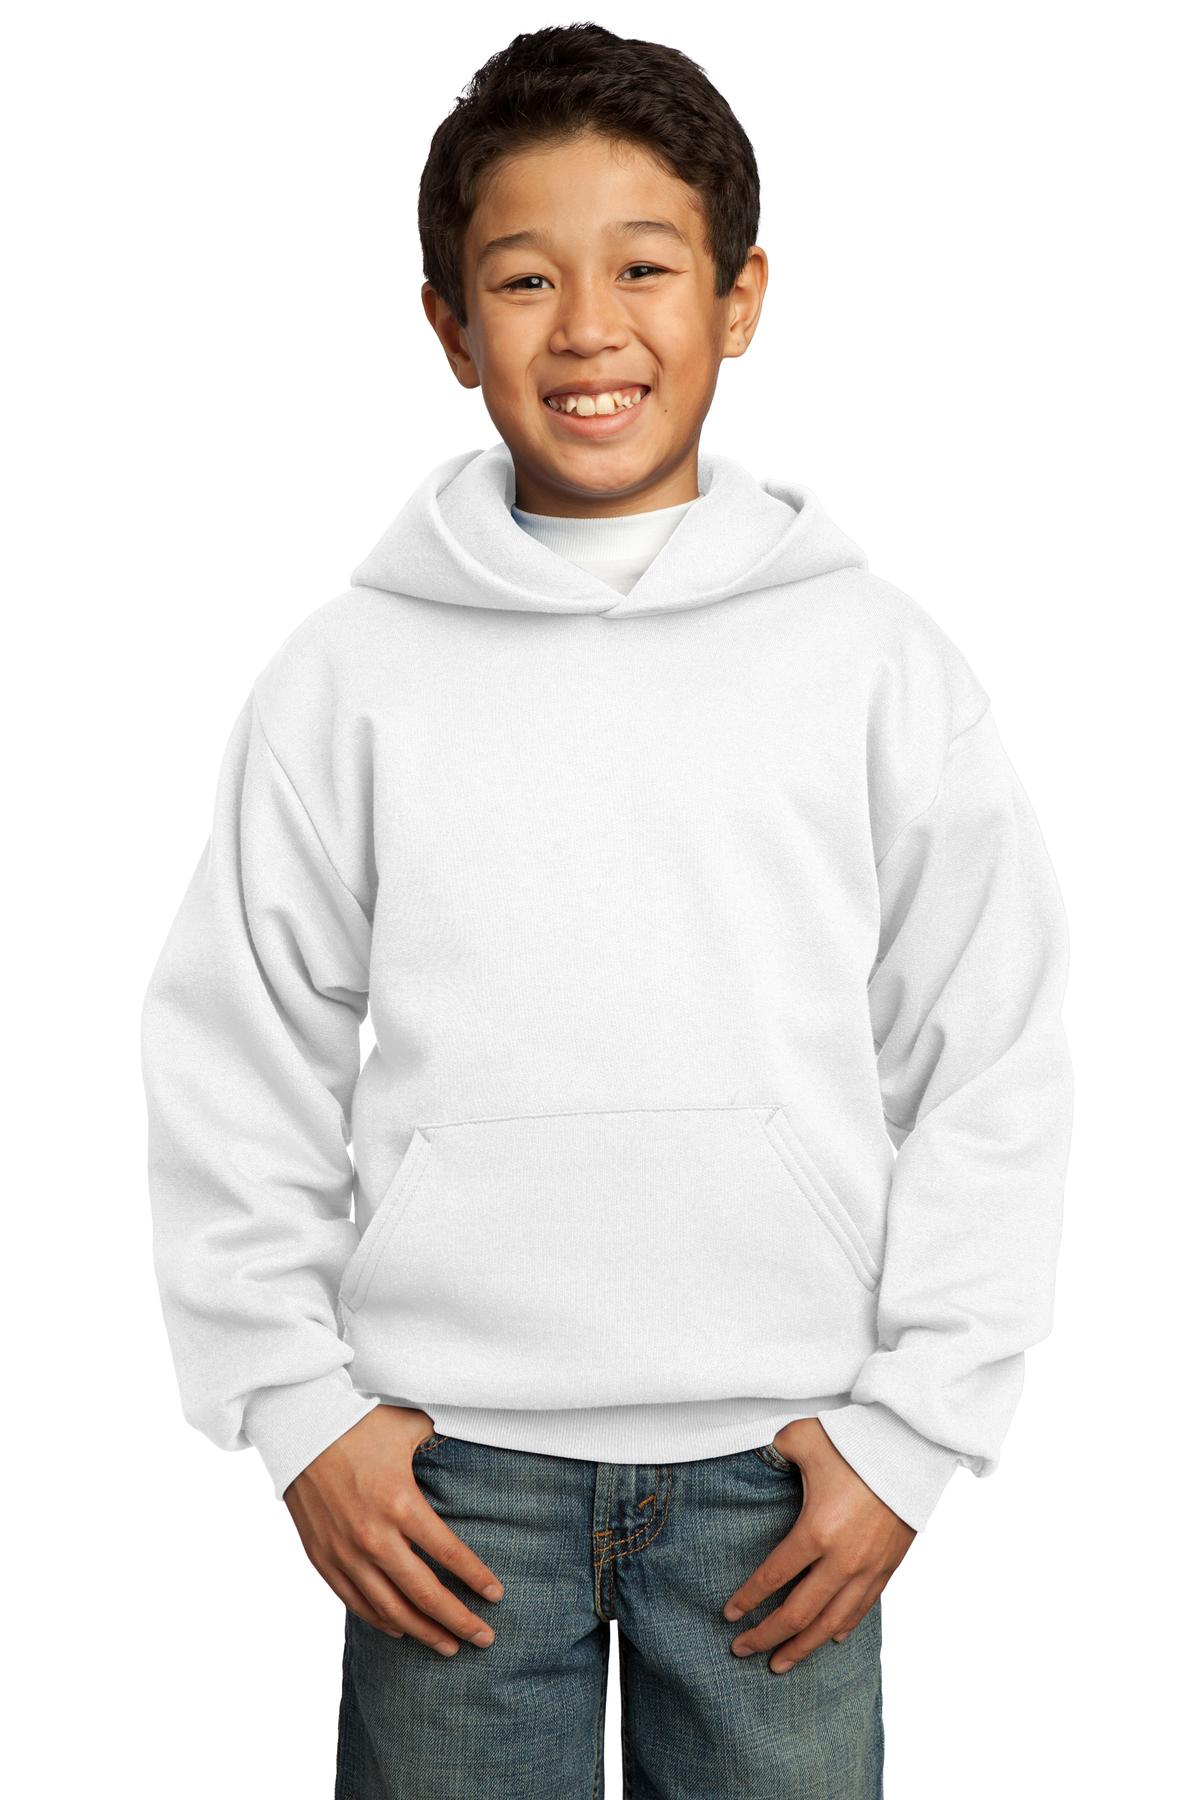 Port & Company ®  - Youth Core Fleece Pullover Hooded Sweatshirt.  PC90YH - White